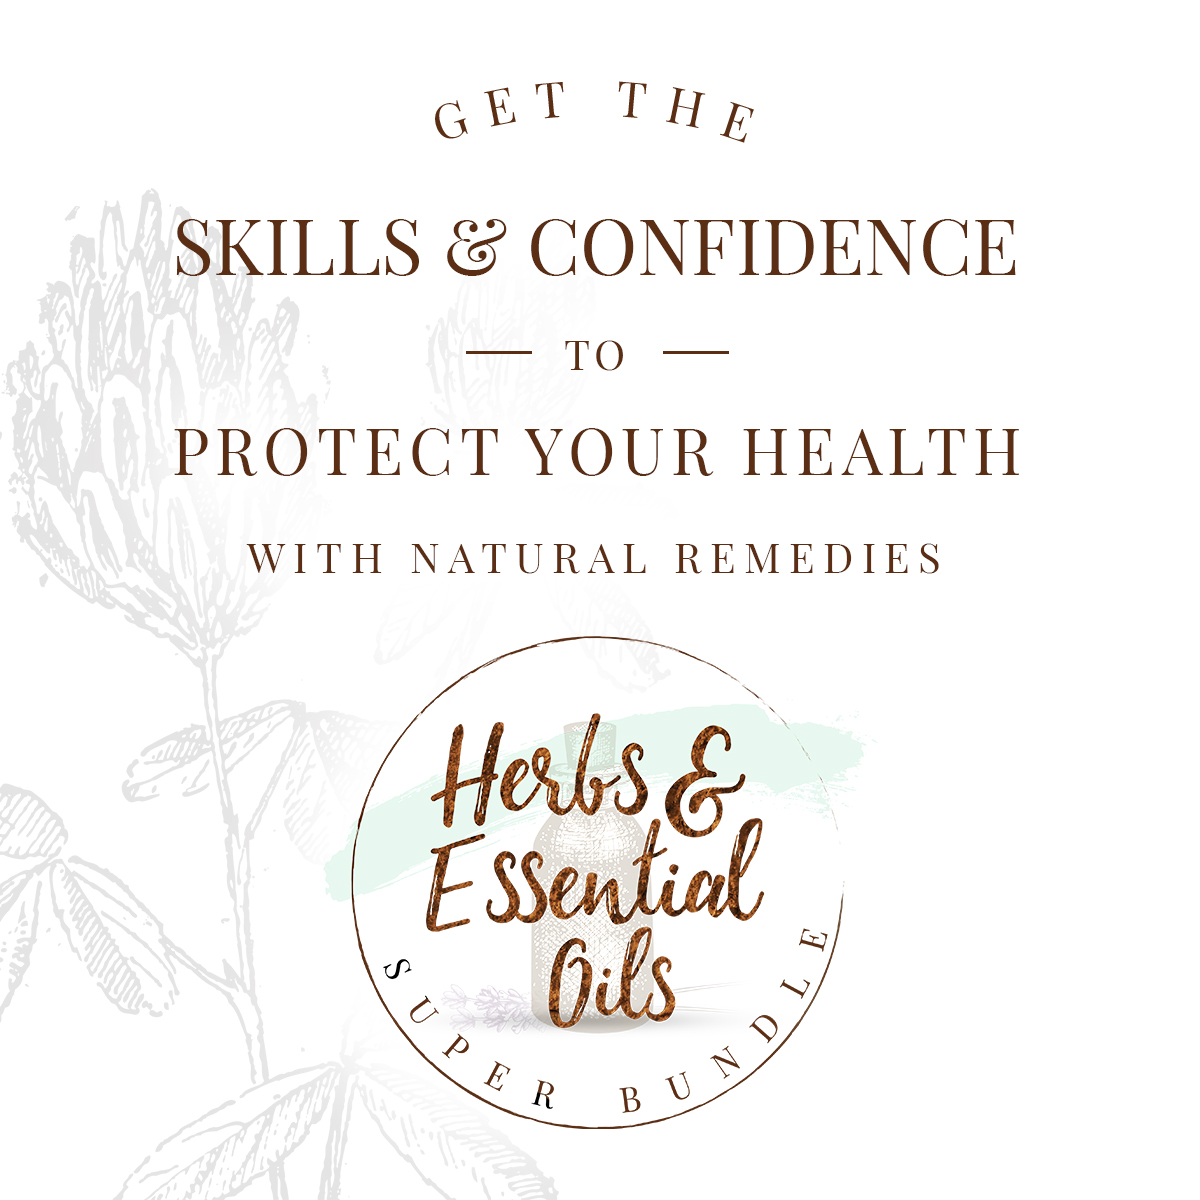 Take Charge Of Your Family's Health With The Herbs & Essential Oils Super Bundle | Growing Up Herbal | Learn how to take charge of your family's health confidently, safely, and effectively!